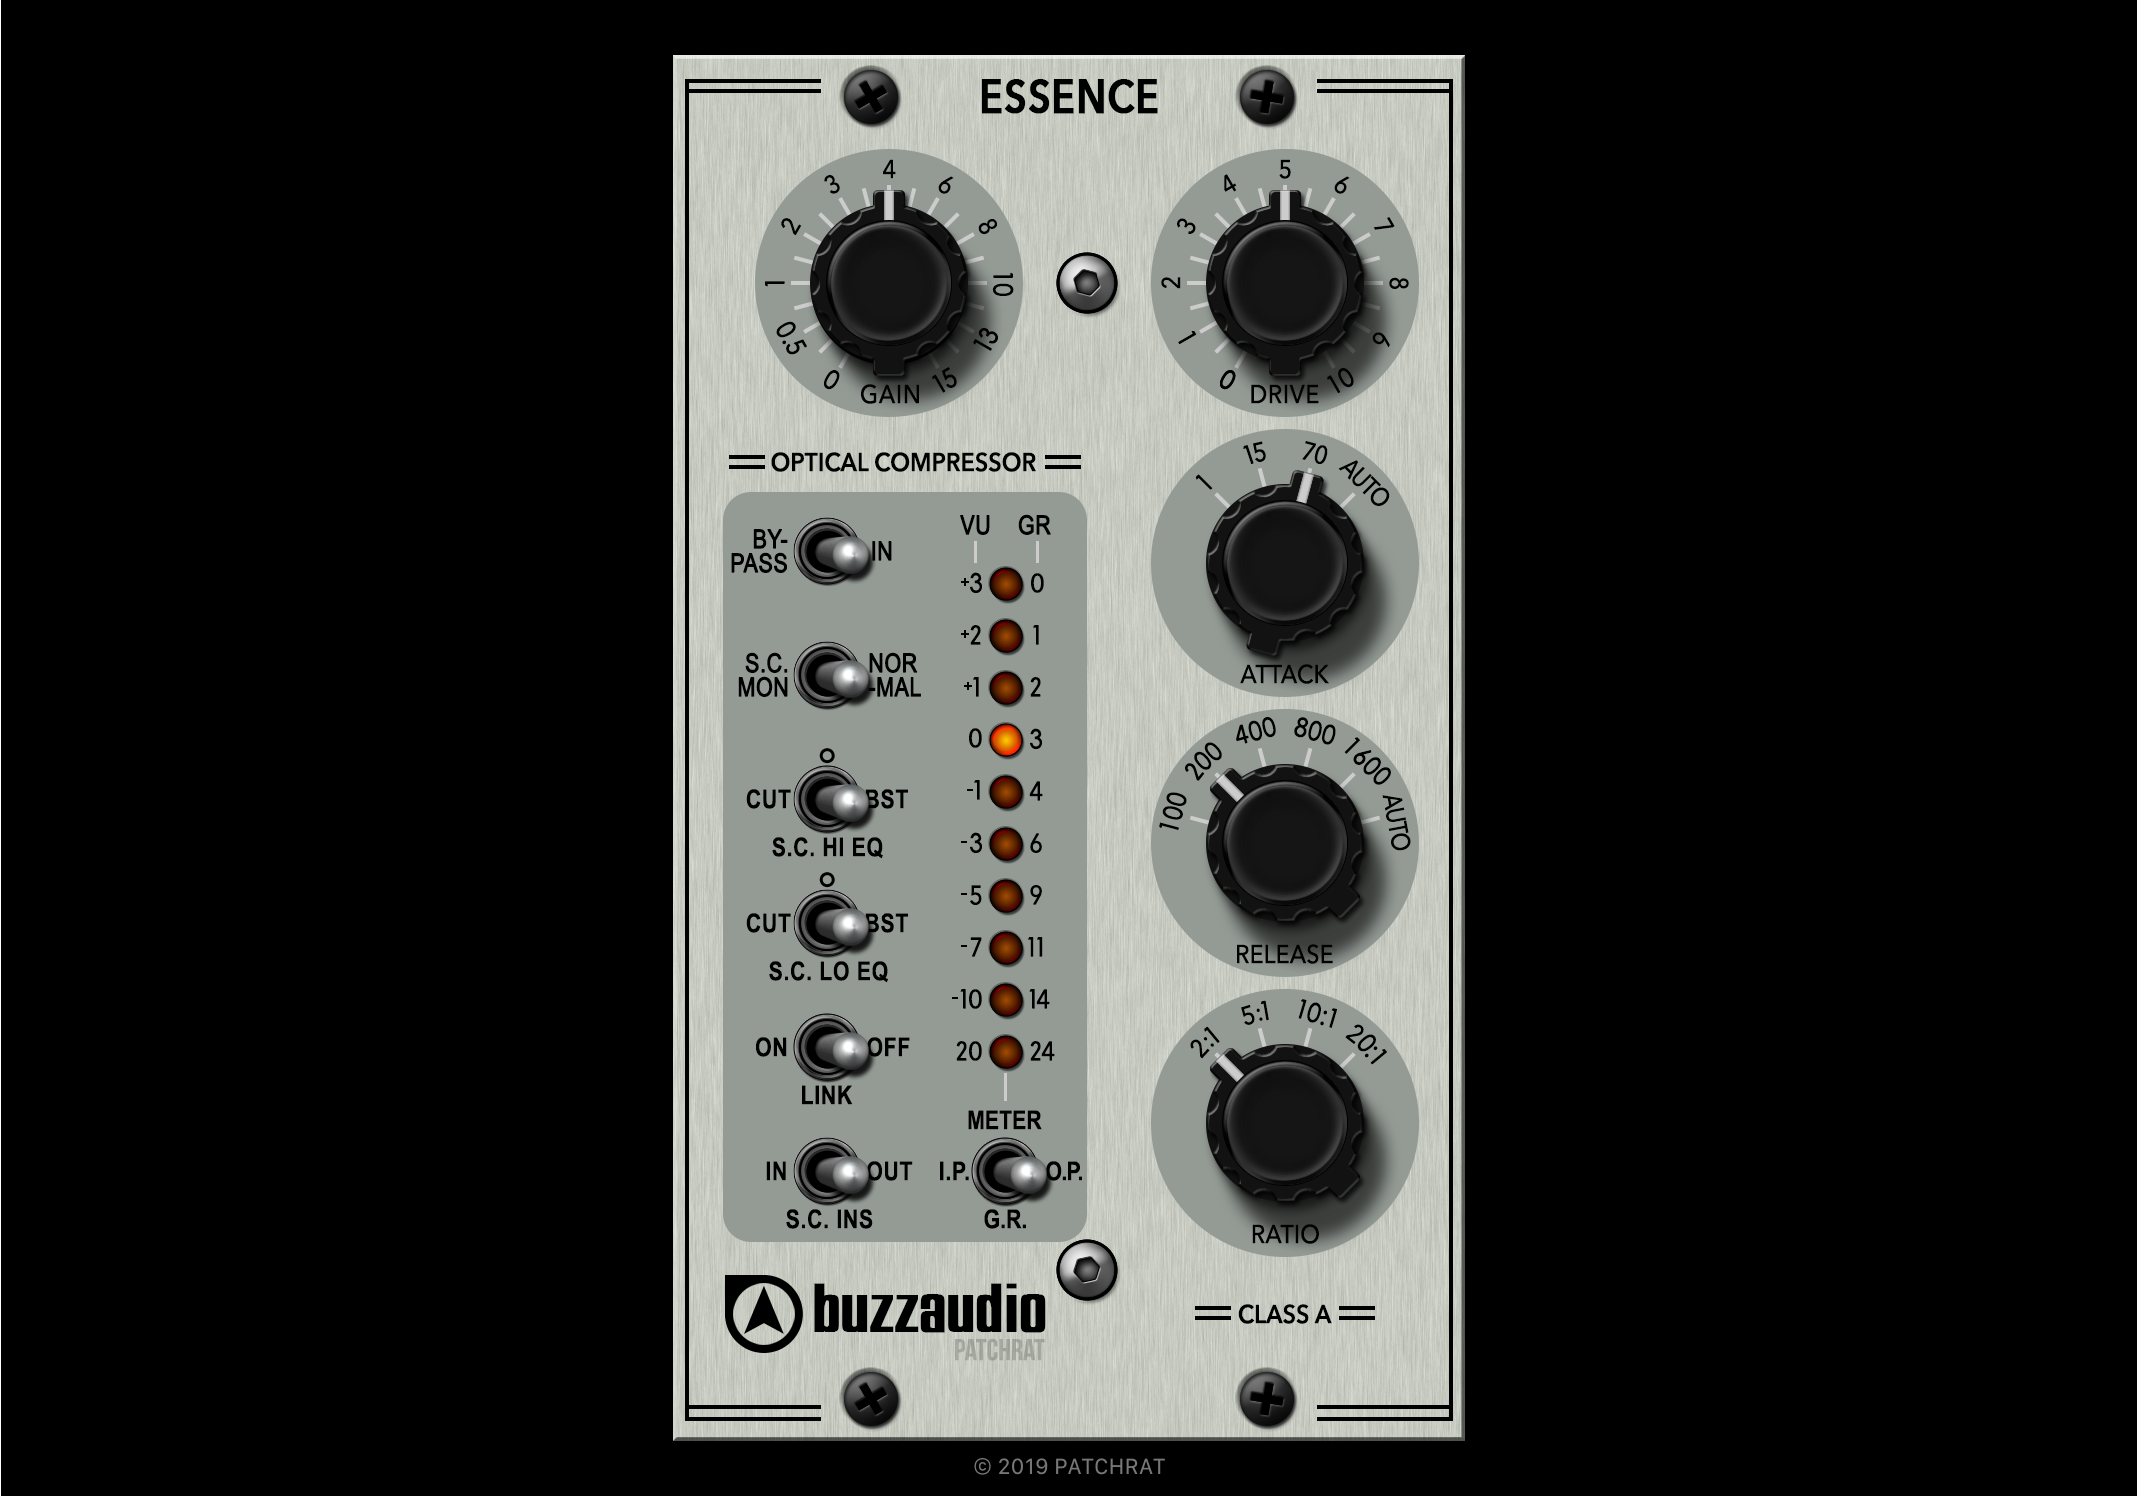 Buzz Audio Essence v2 recall module for the Patchrat app